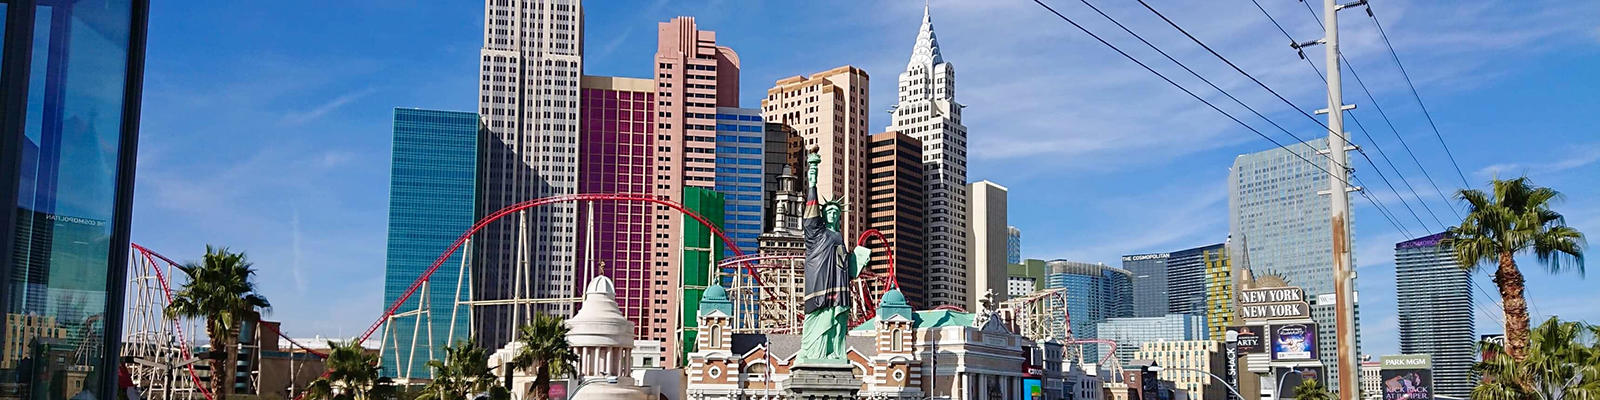 A view of Las Vegas, NV by day